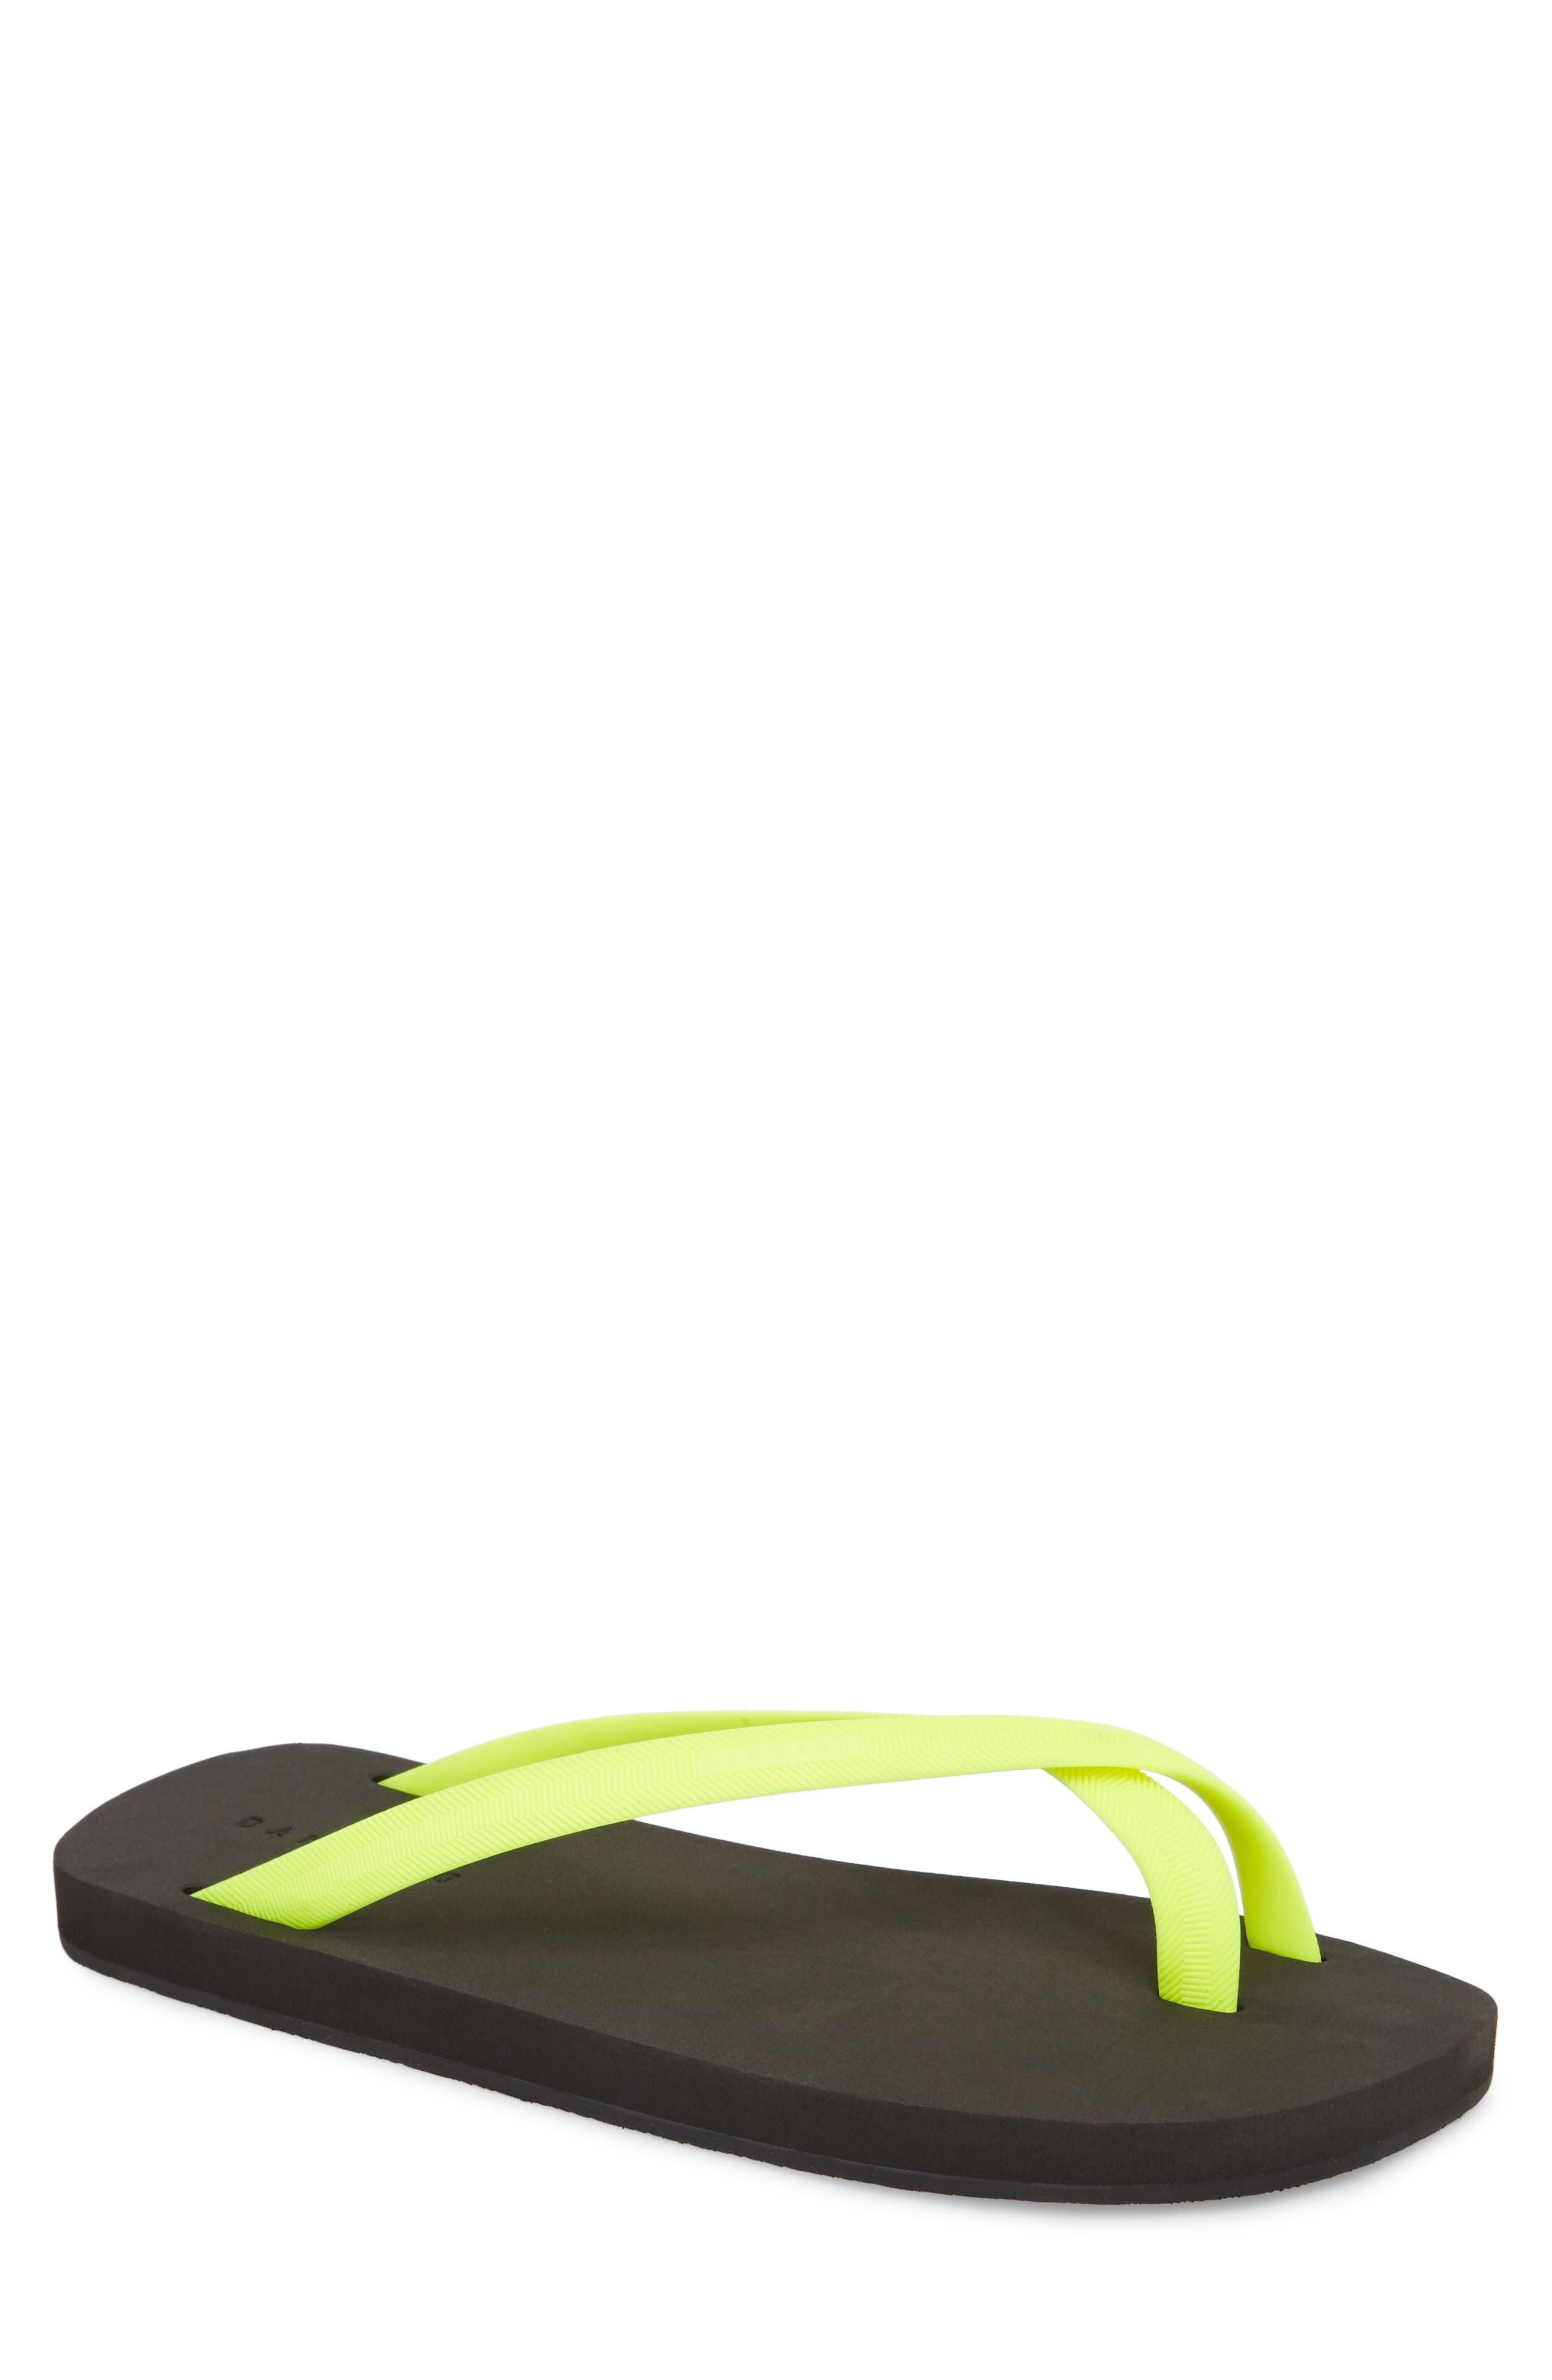 DANWARD Cross Toe Flip Flop (Men)